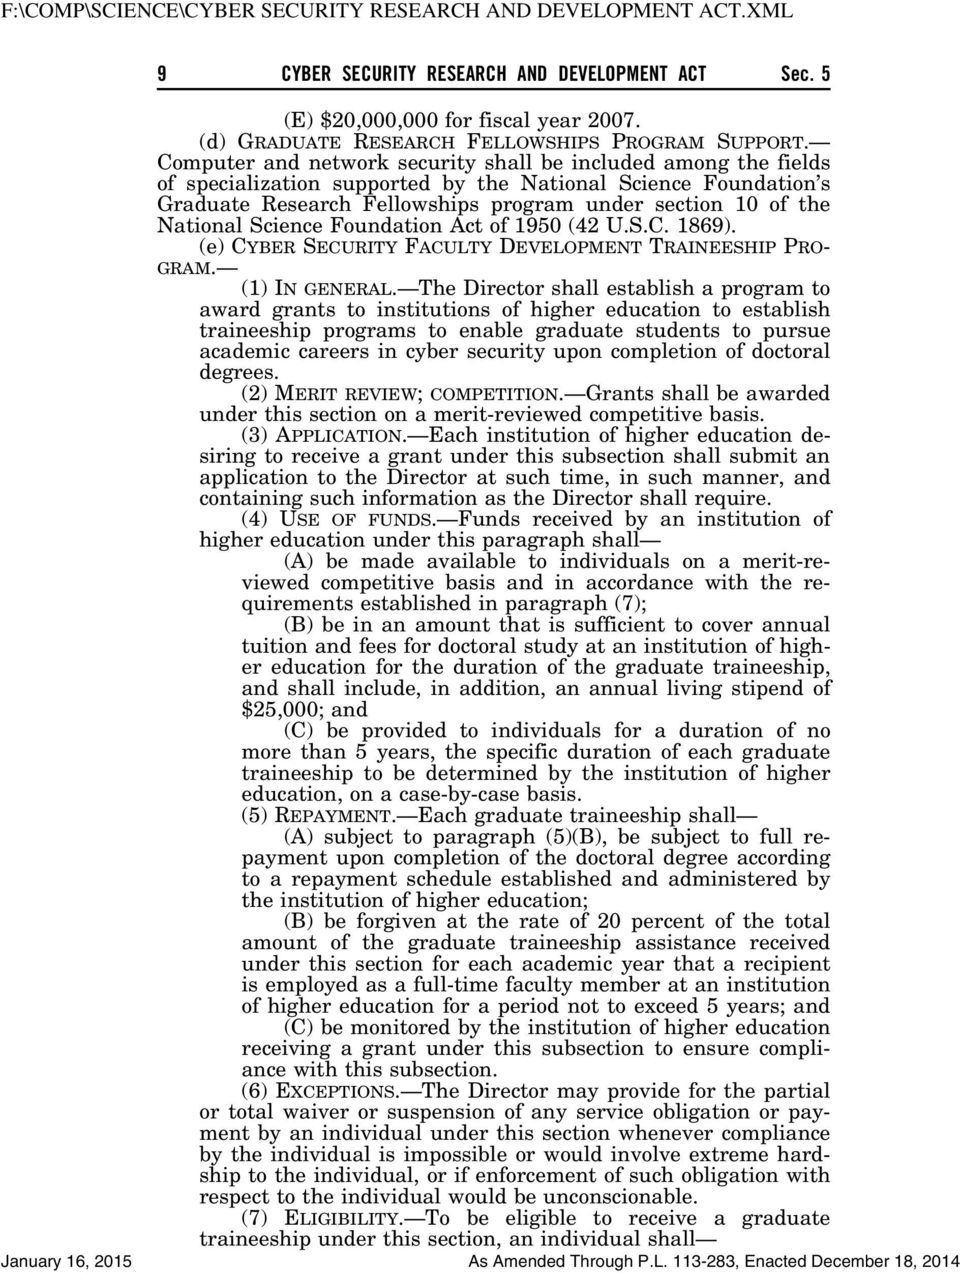 National Science Foundation Act of 1950 (42 U.S.C. 1869). (e) CYBER SECURITY FACULTY DEVELOPMENT TRAINEESHIP PRO- GRAM. (1) IN GENERAL.